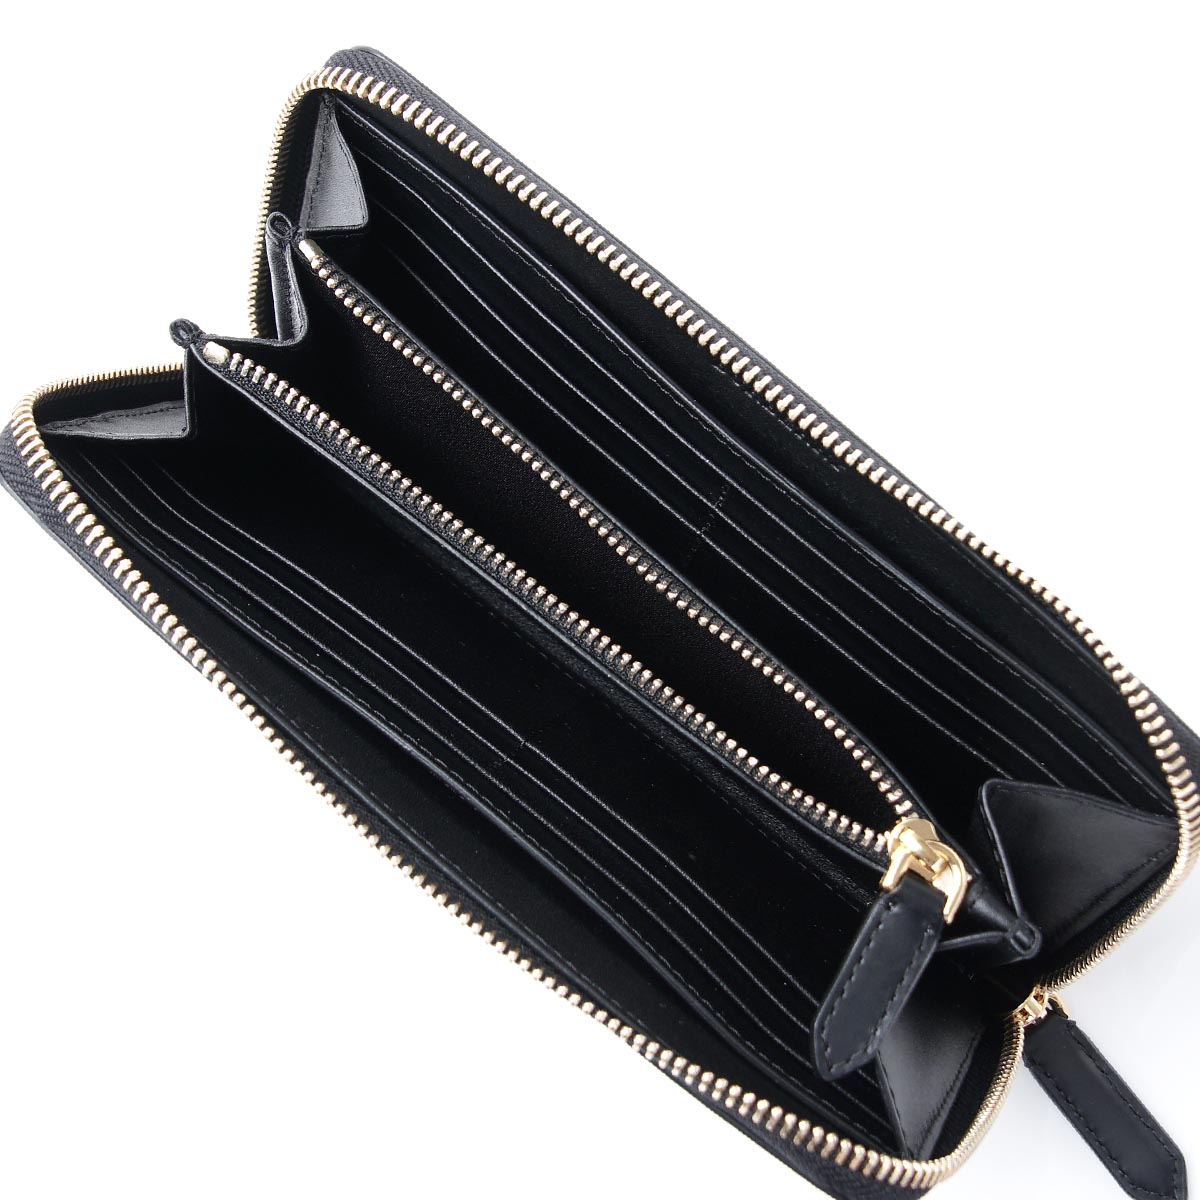 Burberry Long Purse